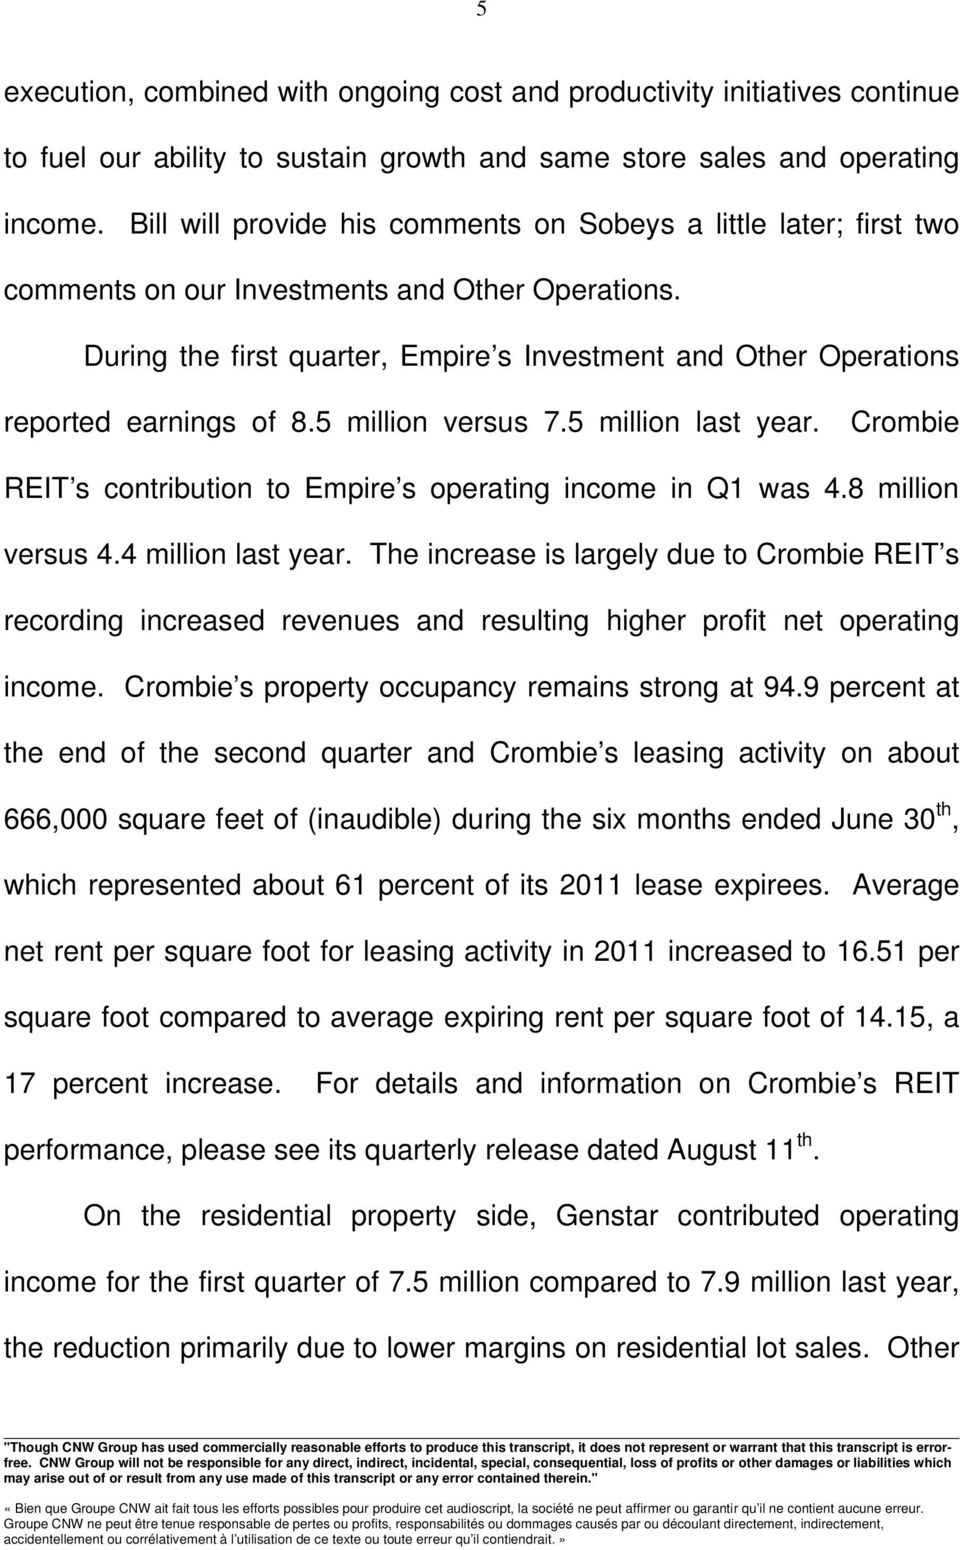 During the first quarter, Empire s Investment and Other Operations reported earnings of 8.5 million versus 7.5 million last year. Crombie REIT s contribution to Empire s operating income in Q1 was 4.